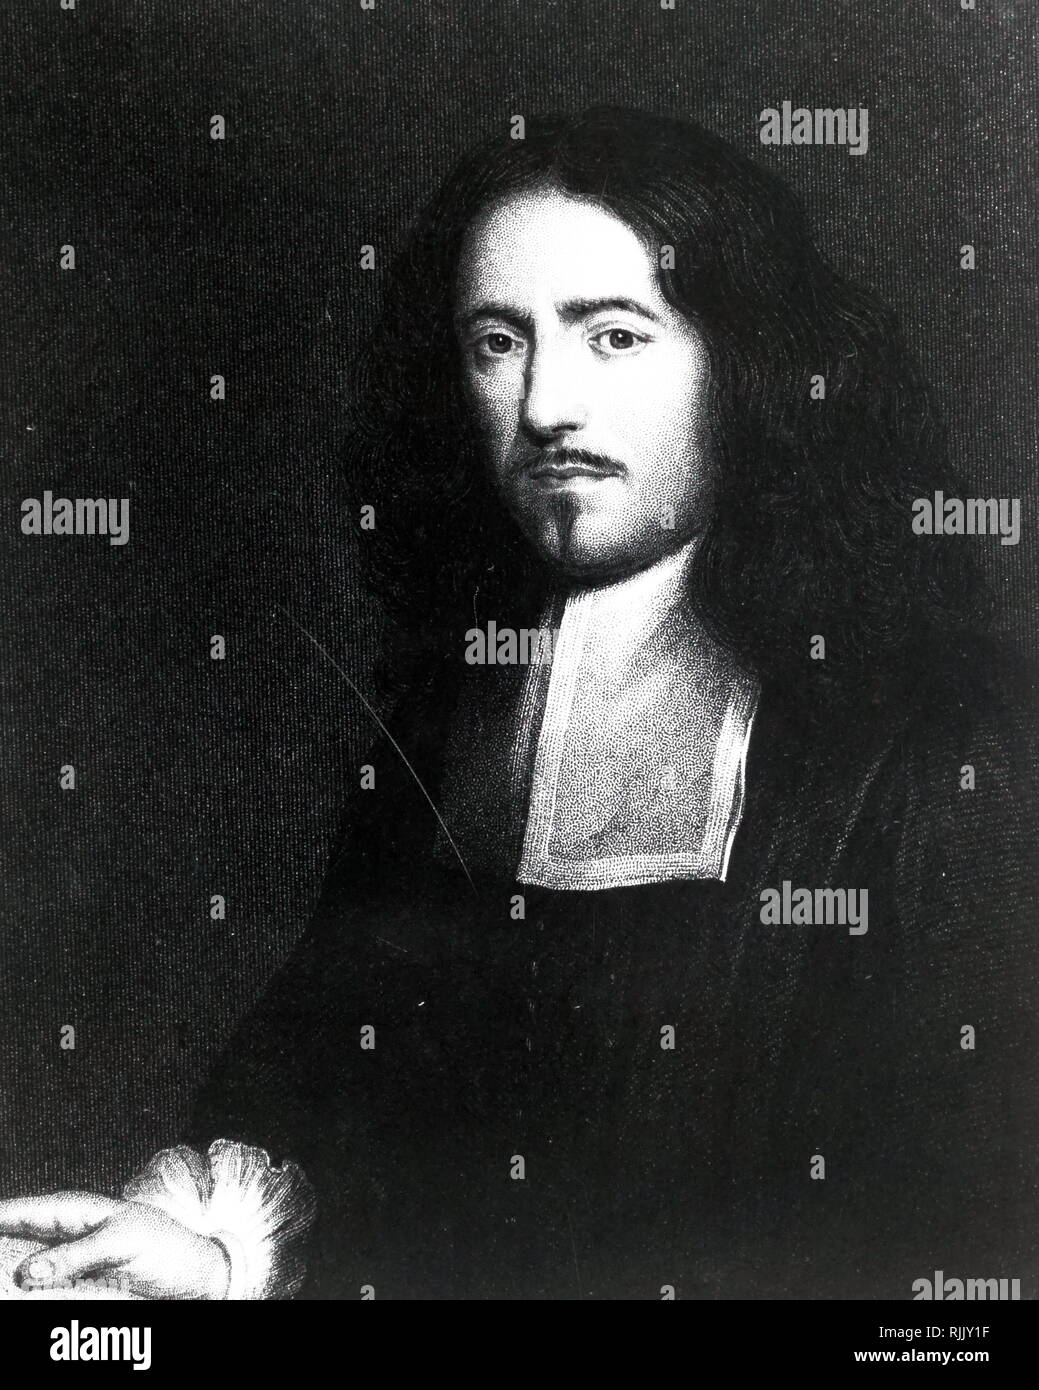 Portrait of Marcello Malpighi (1628 - 1694); Italian biologist and physician, who is referred to as the 'Father of microscopically anatomy, histology, physiology and embryology'. - Stock Image